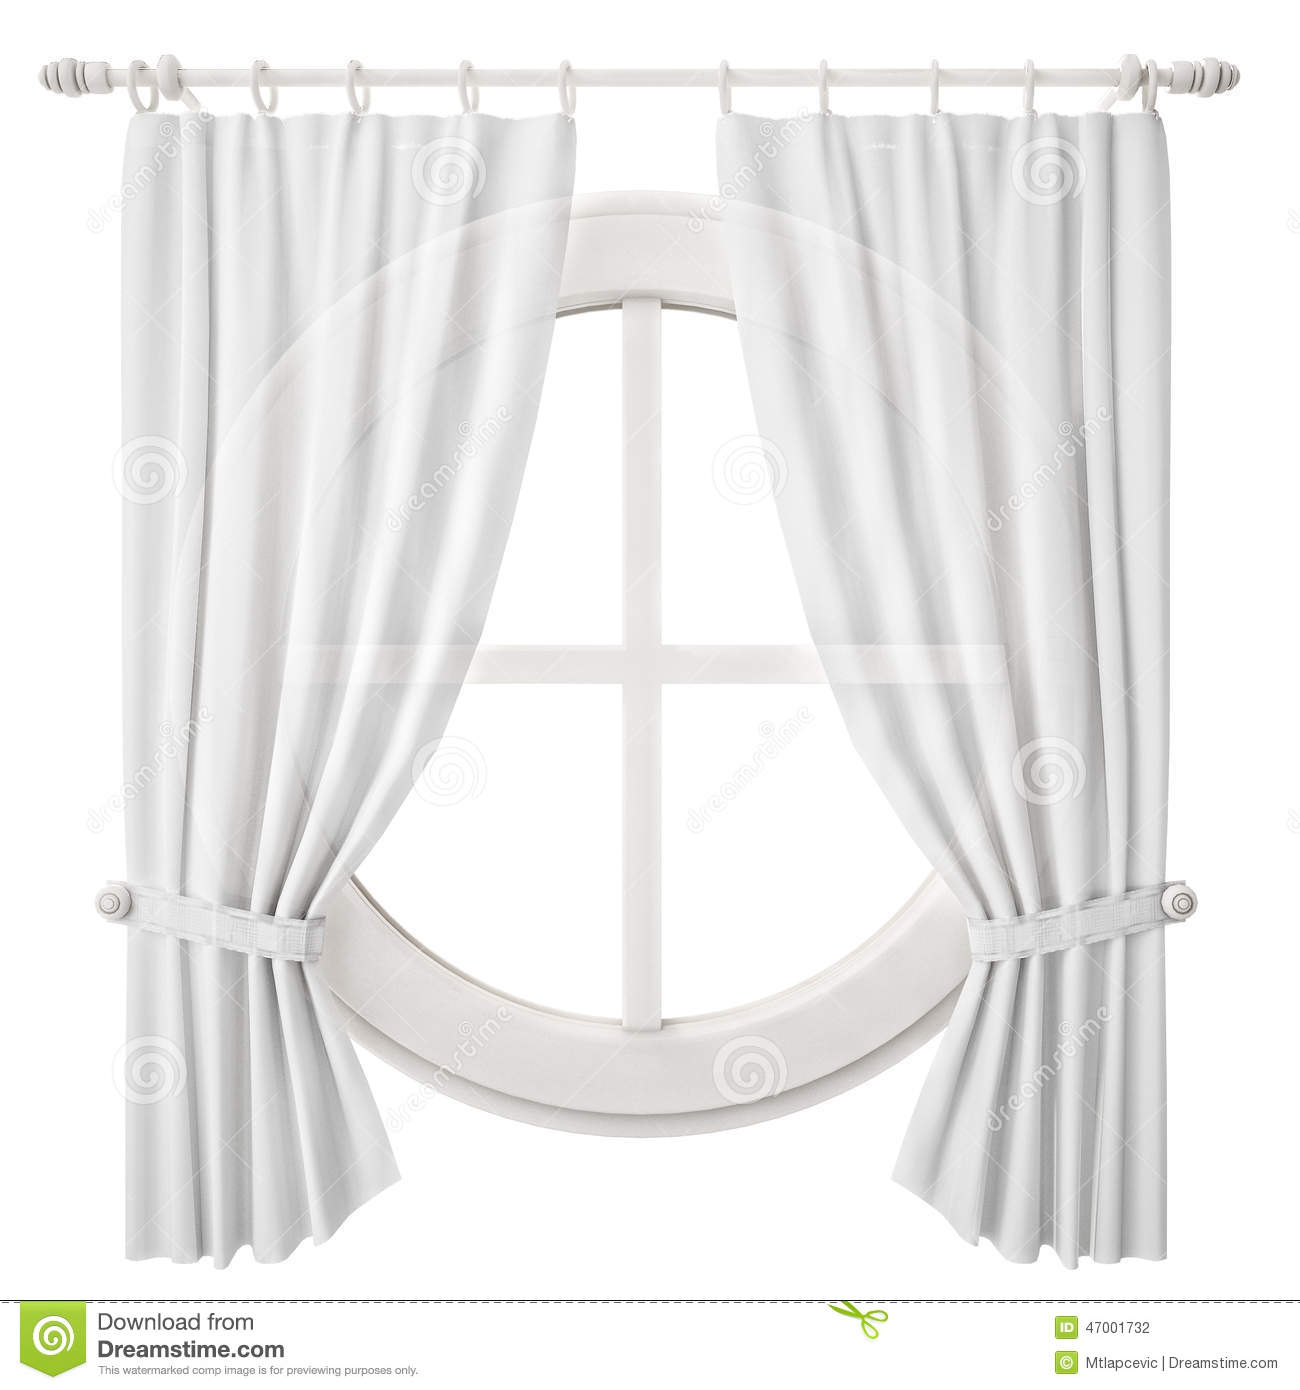 Circle Window Frame With Curtain Isolated On White With Regard To Circle Curtain Valances (View 4 of 20)